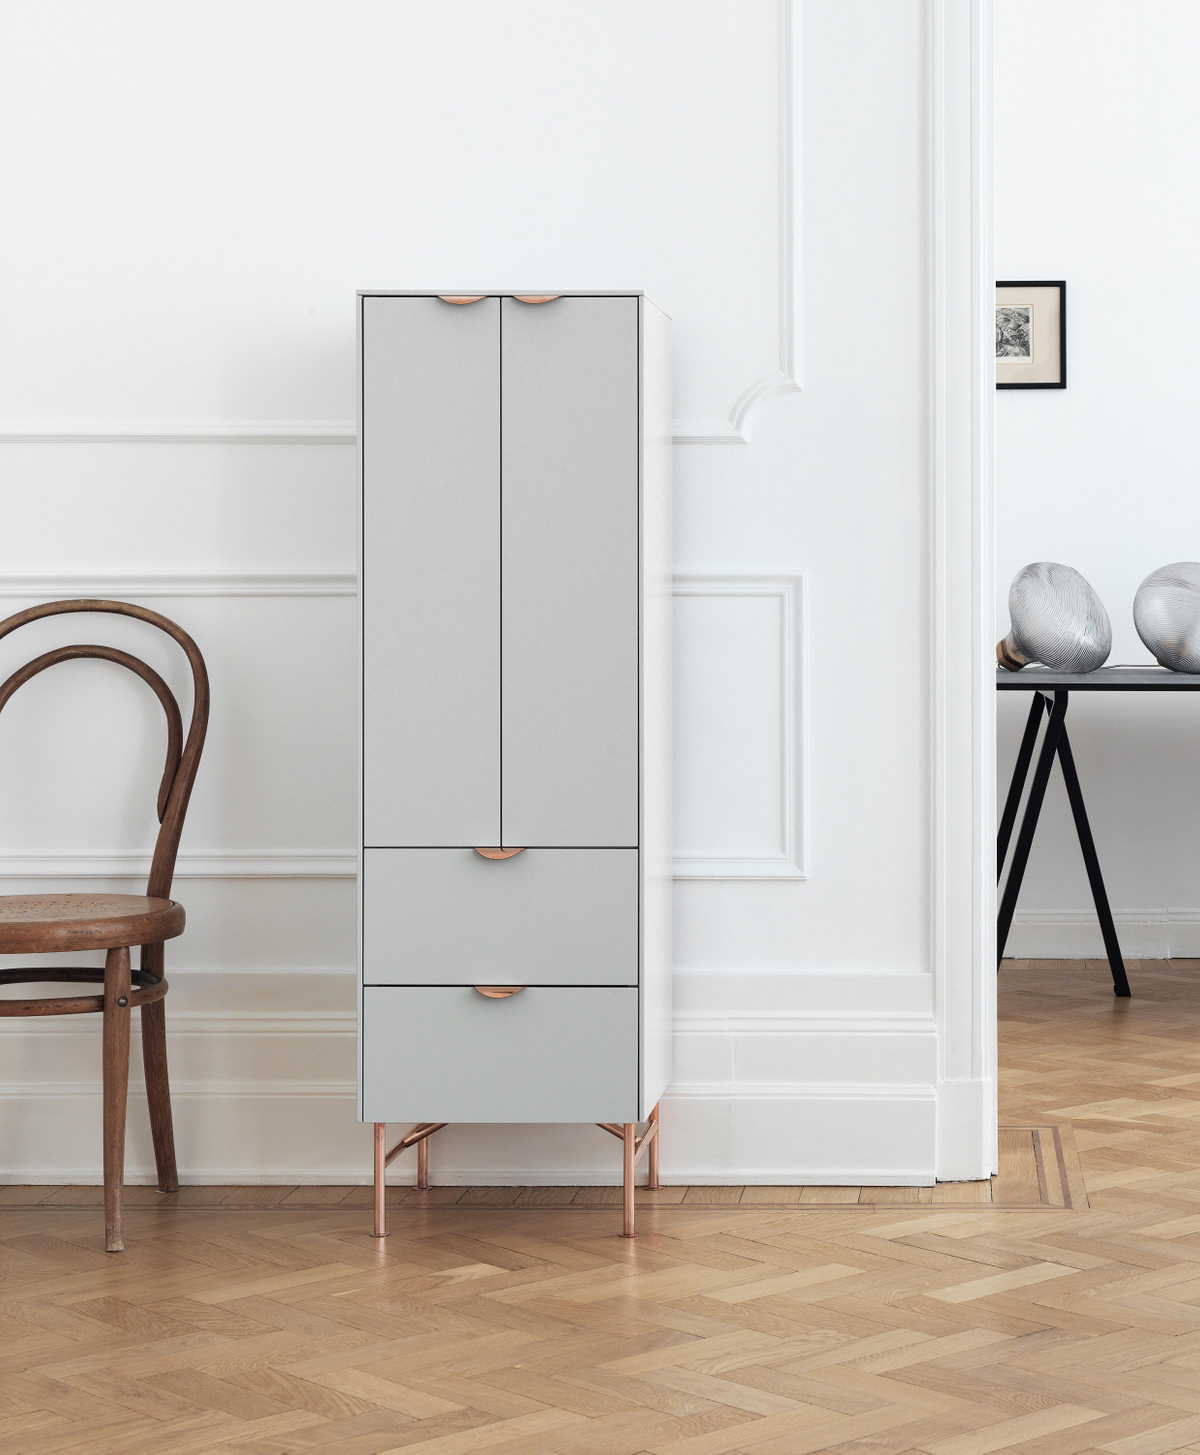 superfront-storage-ikea-metod-cabinet-copper-handle-holy-wafer.jpg